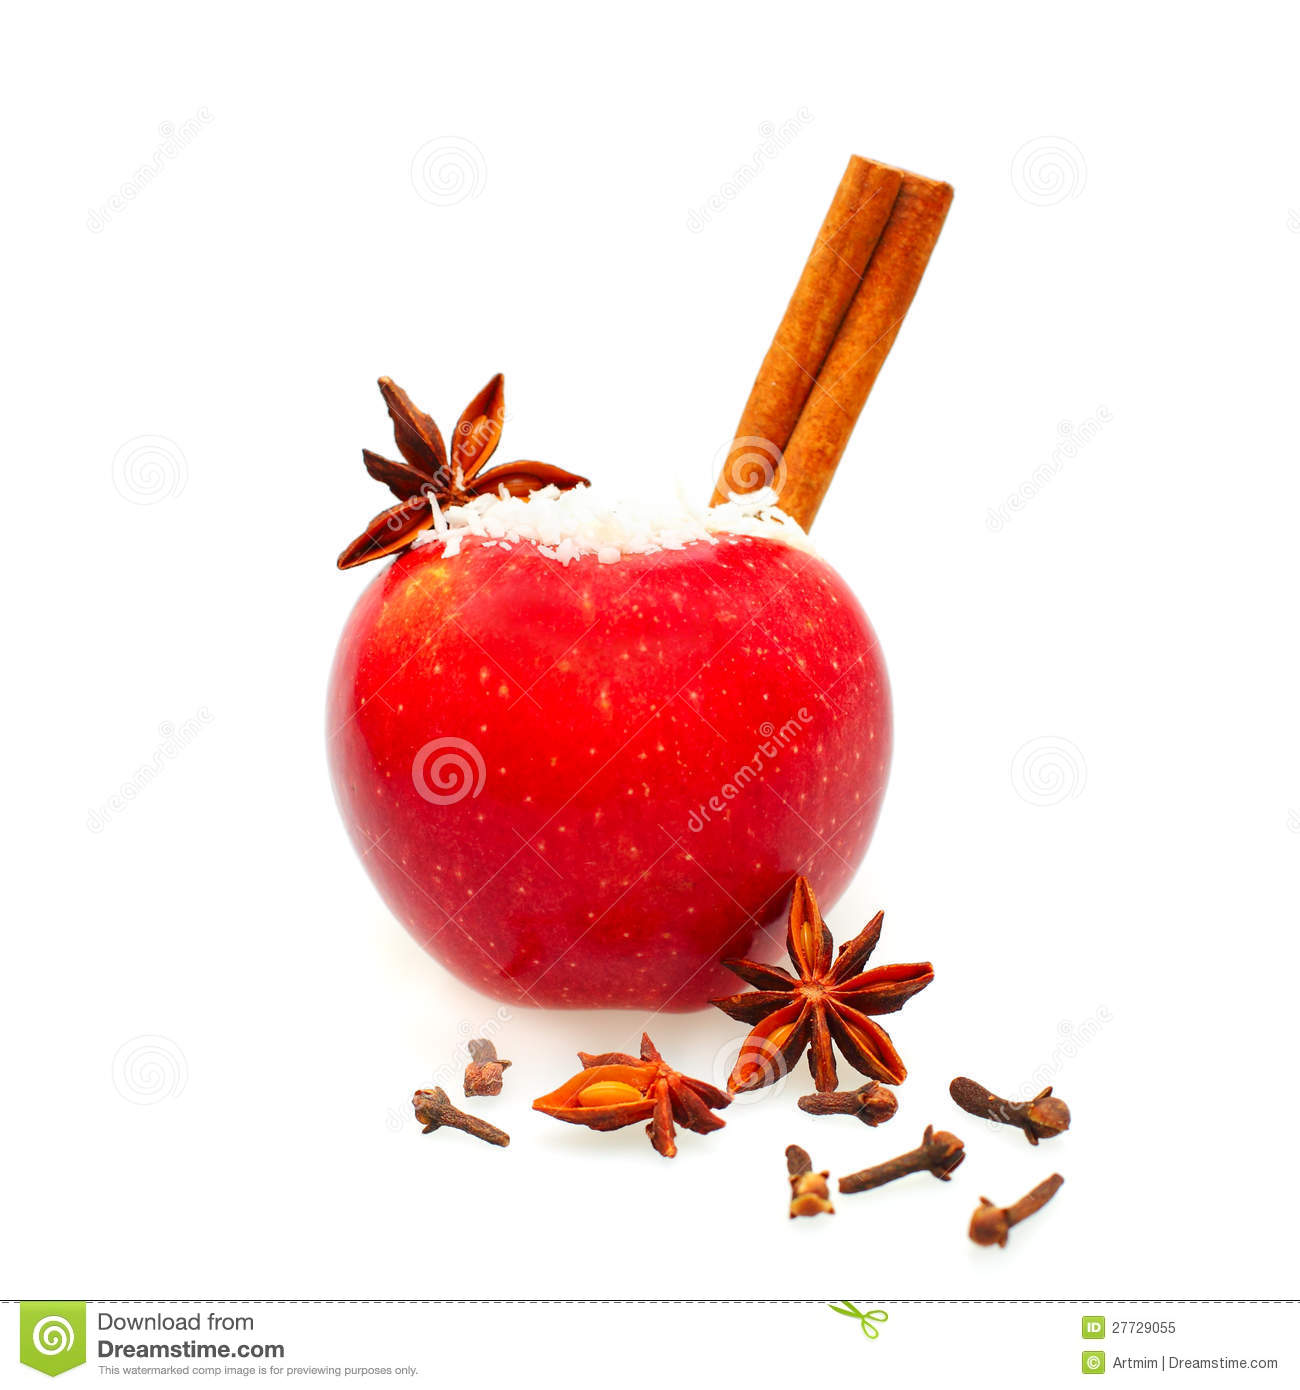 Christmas food decor red apple royalty free stock photo for Apples decoration